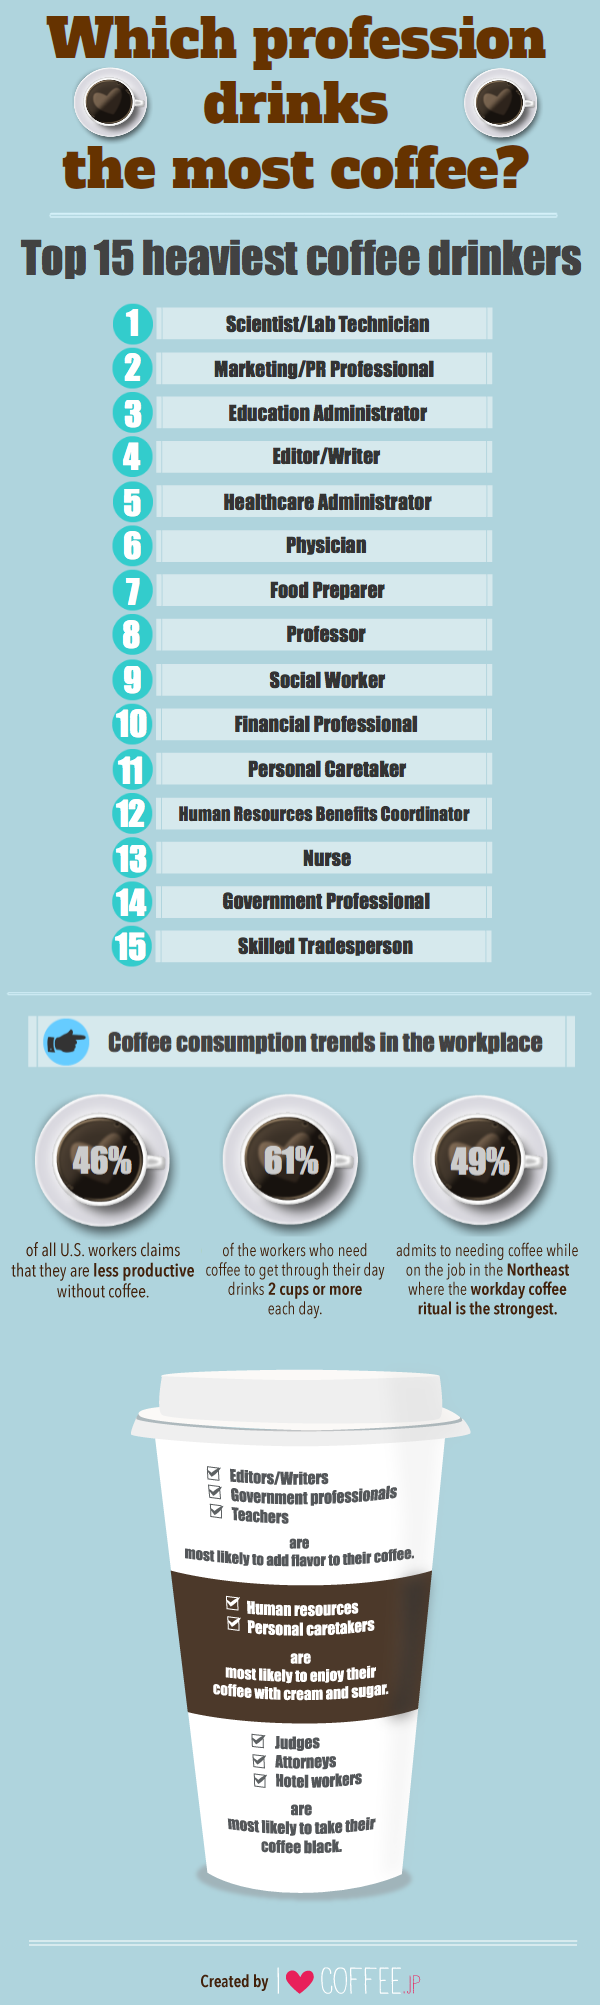 I Love Coffee info graphic - which profession drinks the most coffee